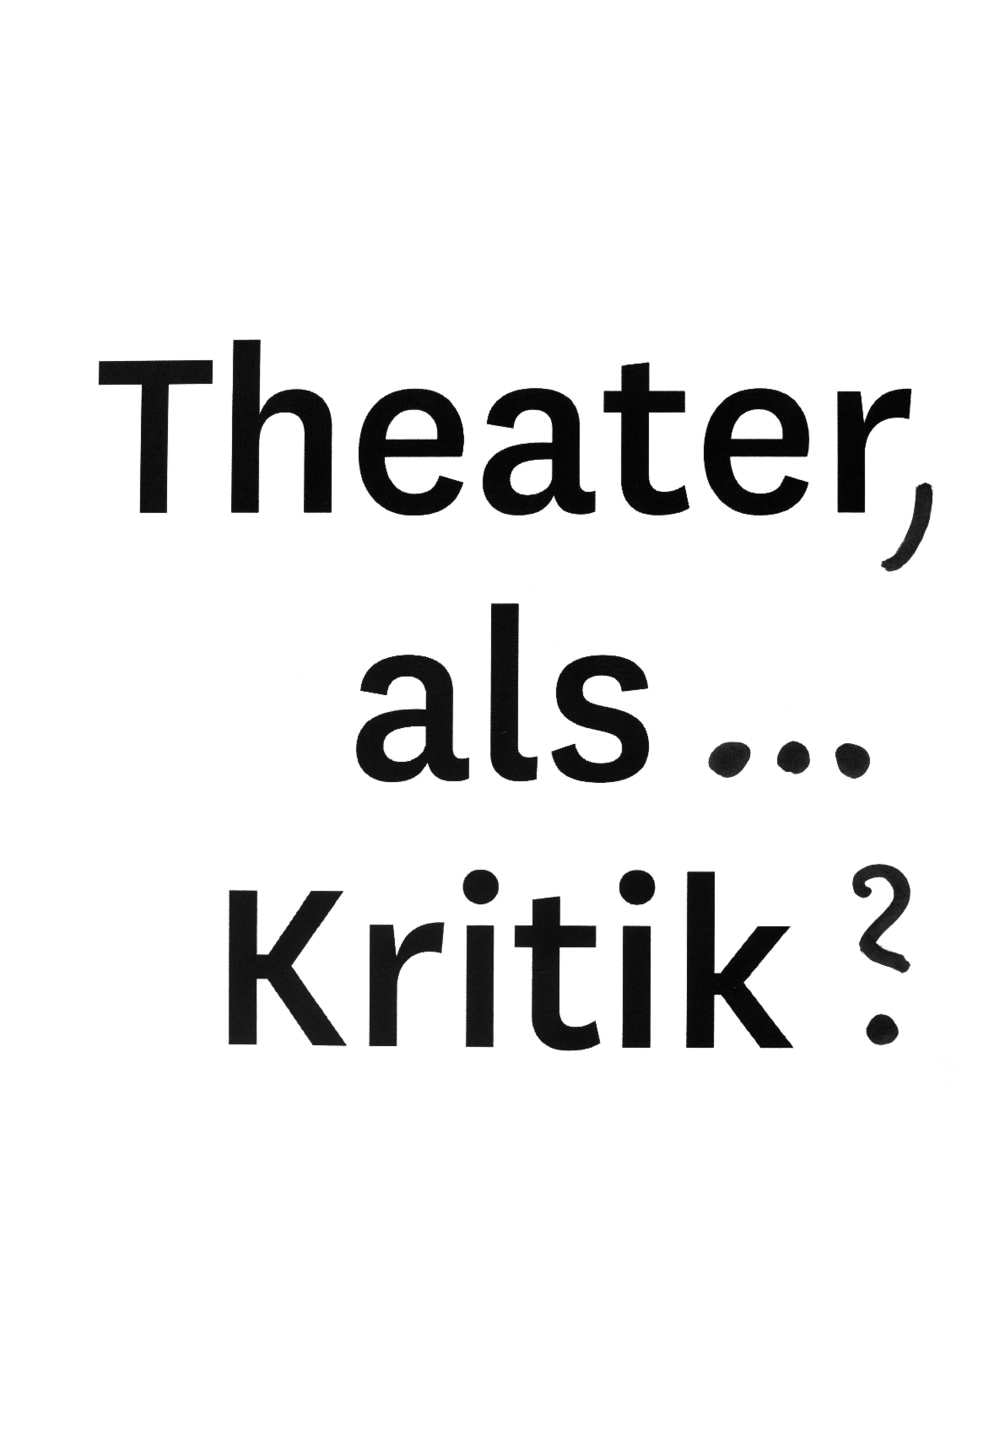 theater-as-critique-slip-03-1005x1435px